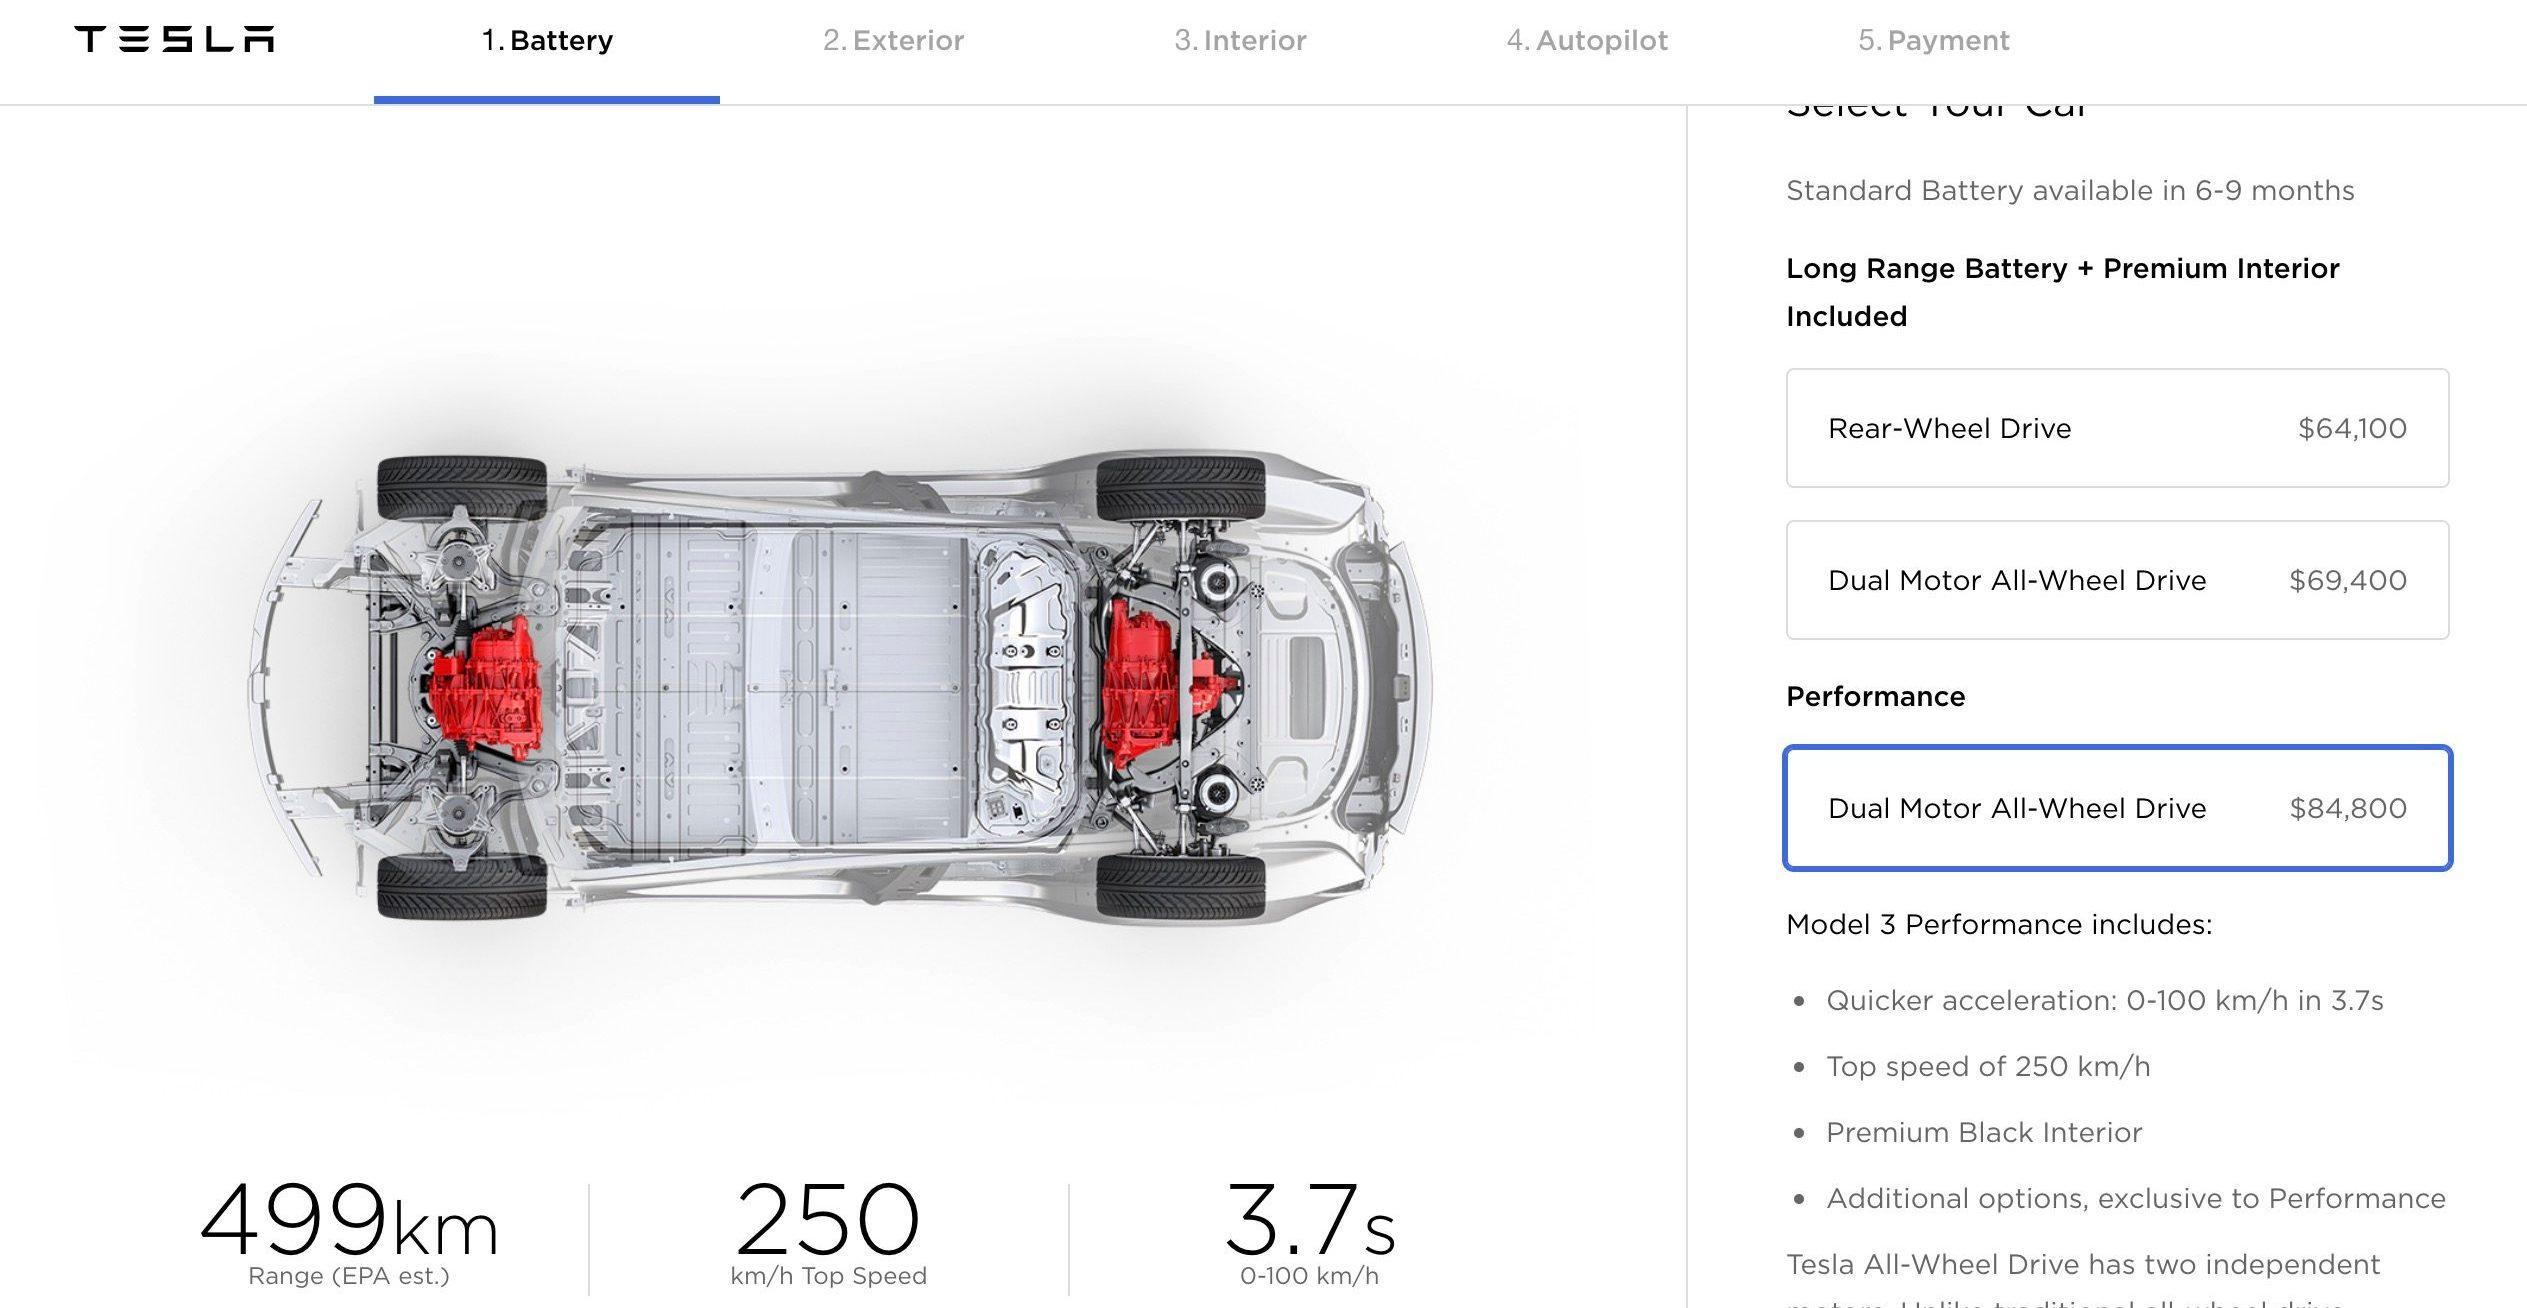 Tesla updates Model 3 options and pricing, dual motor becomes cheaper, adds color, and more